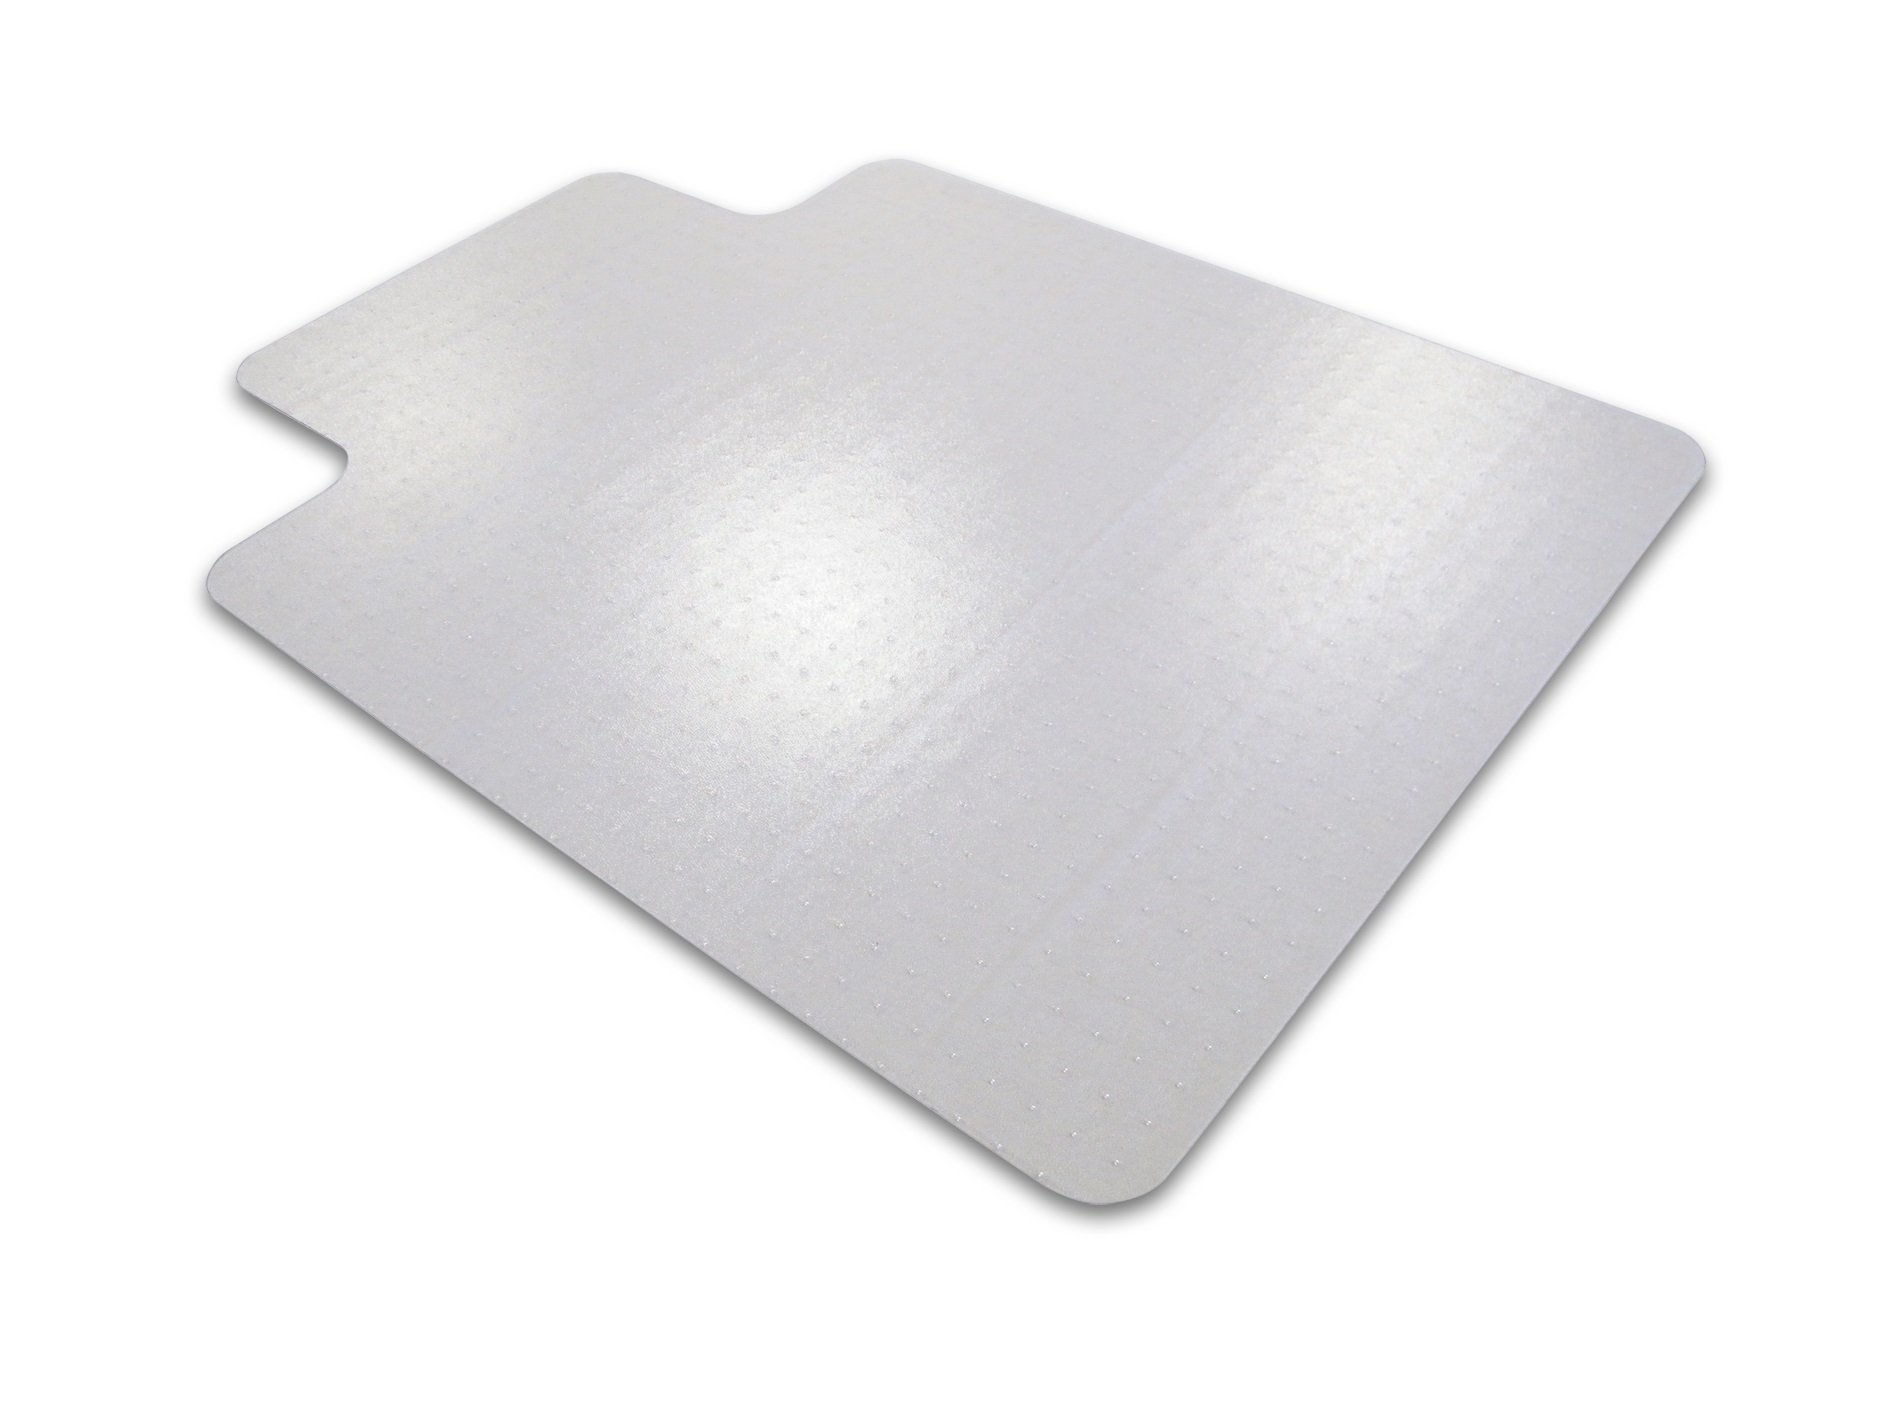 Ecotex Enhanced Polymer Clear Chairmat for Standard Pile Carpets up to 3/8'' , Rectangular with Front Lipped Area for Under Desk Protection (48'' X 51'') by Floortex